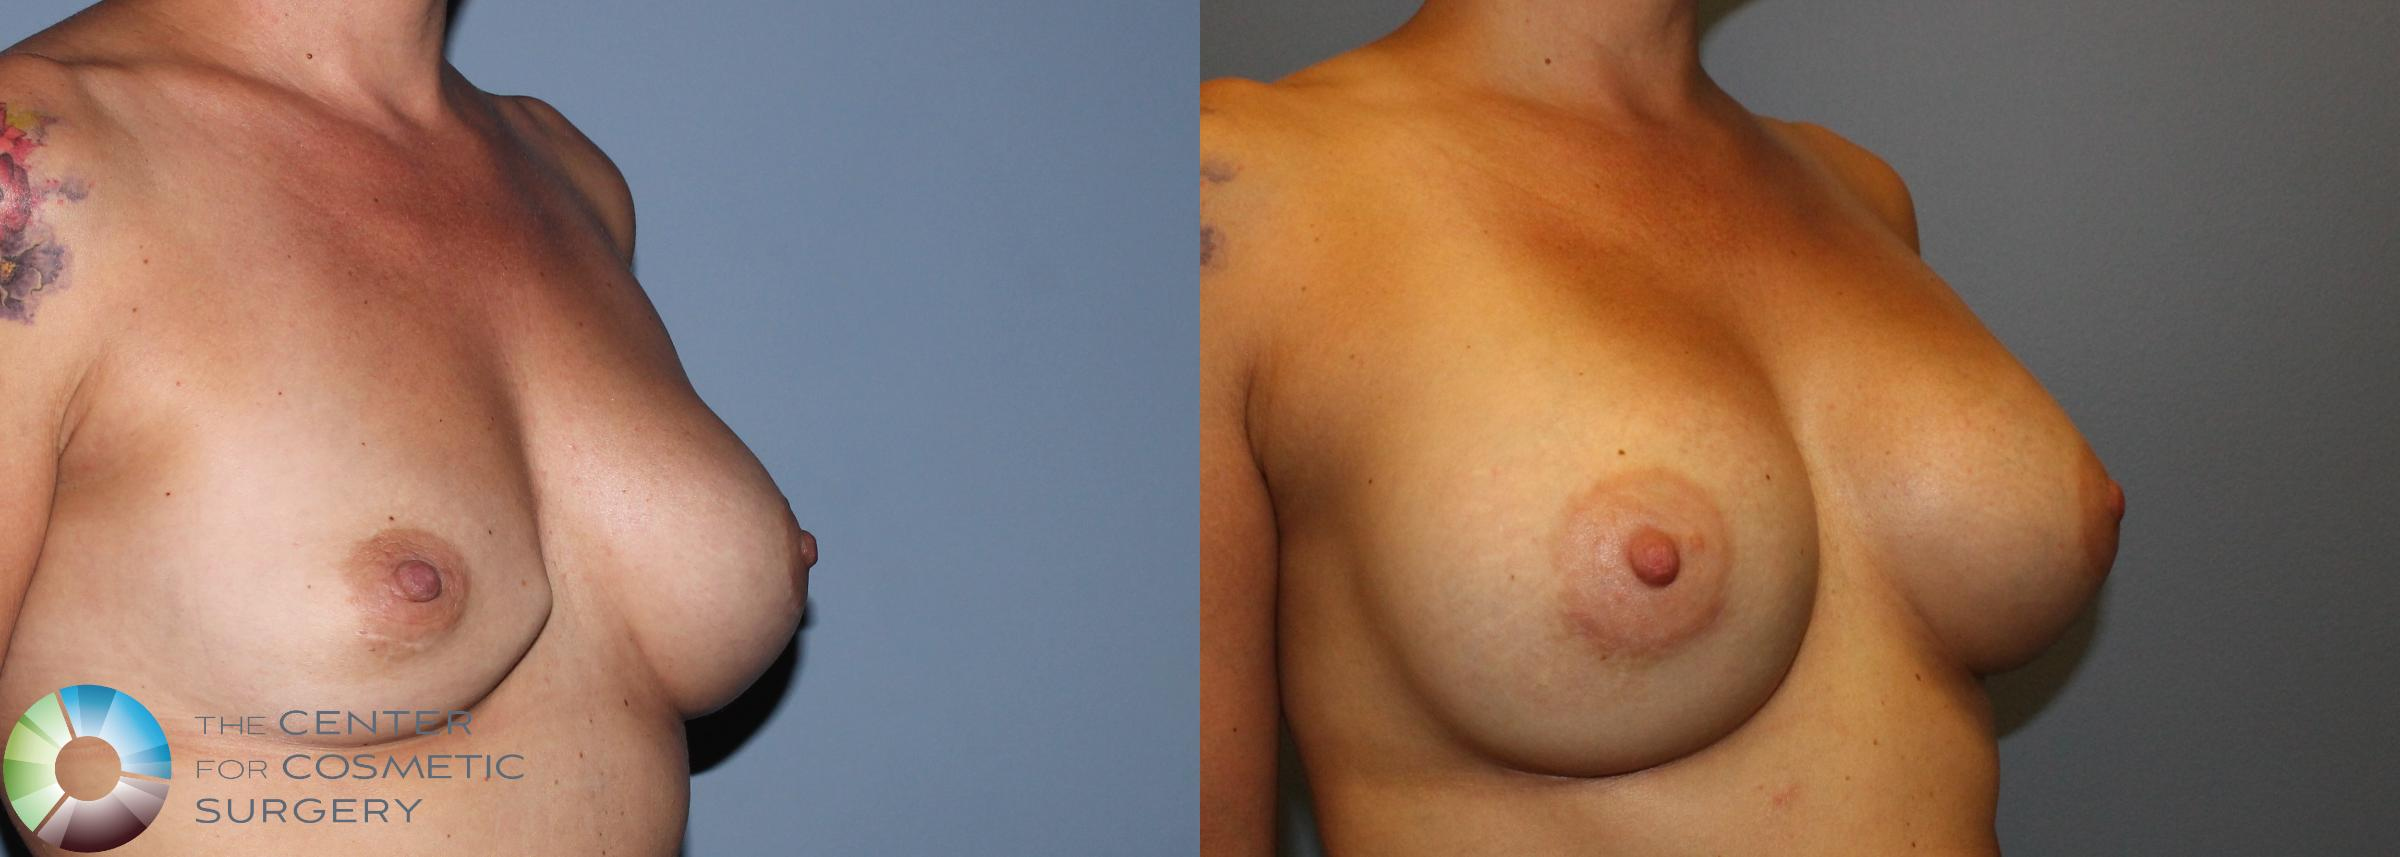 Breast Revision Case 830 Before & After View #2 | Golden, CO | The Center for Cosmetic Surgery